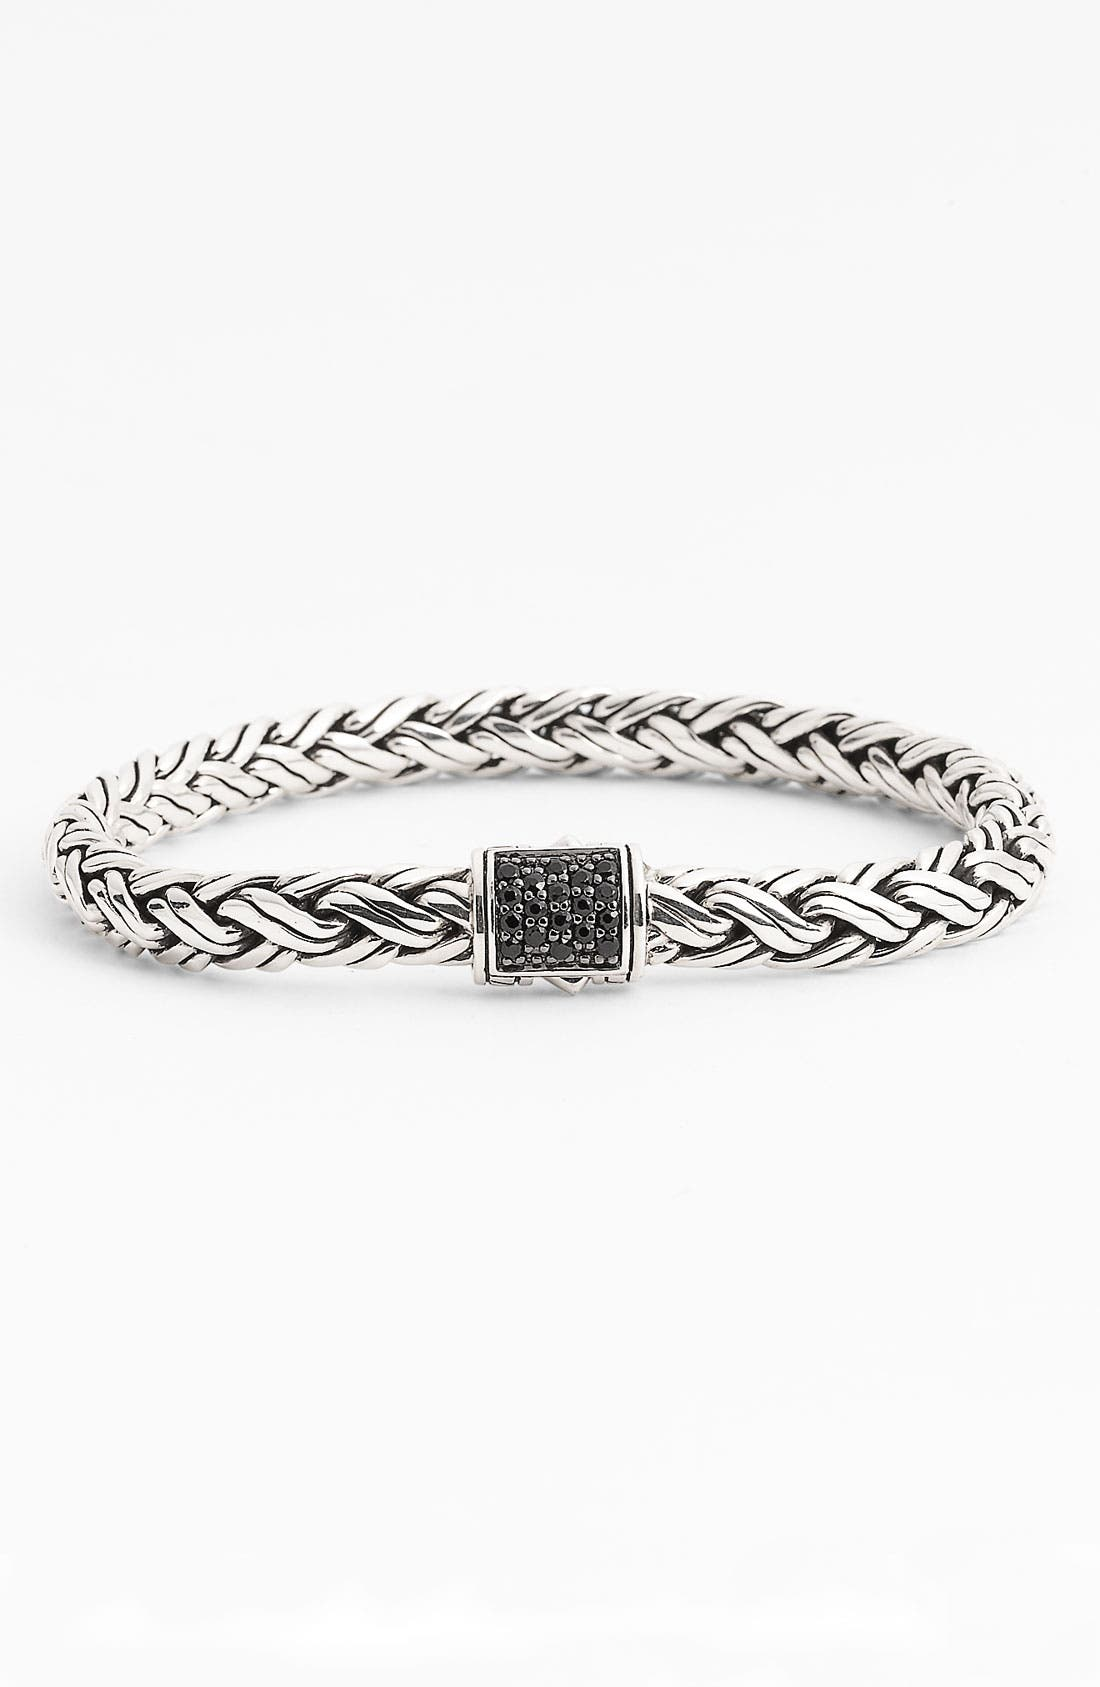 Alternate Image 1 Selected - John Hardy 'Classic Chain' Small Braided Bracelet (Nordstrom Exclusive)